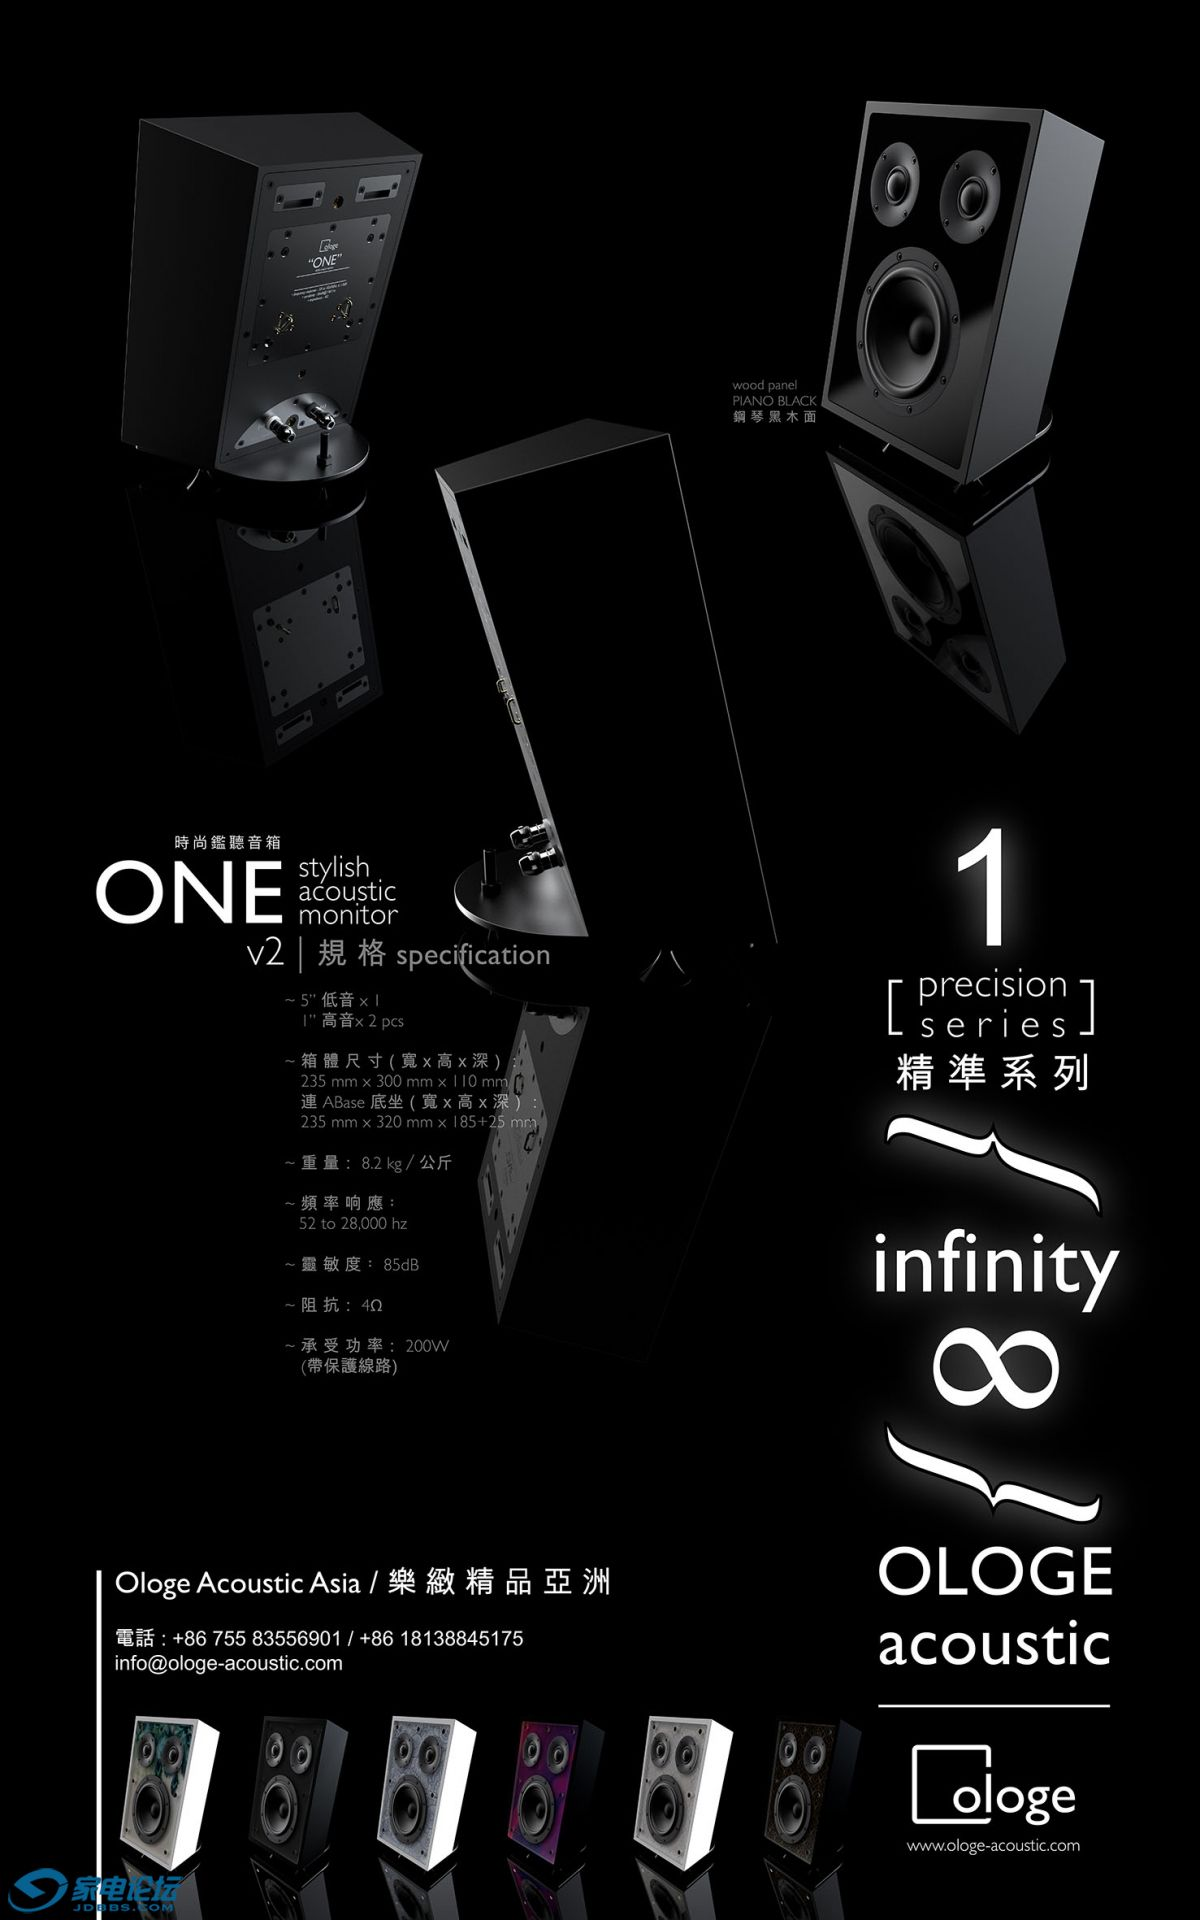 infinity layout - chinese-6.jpg